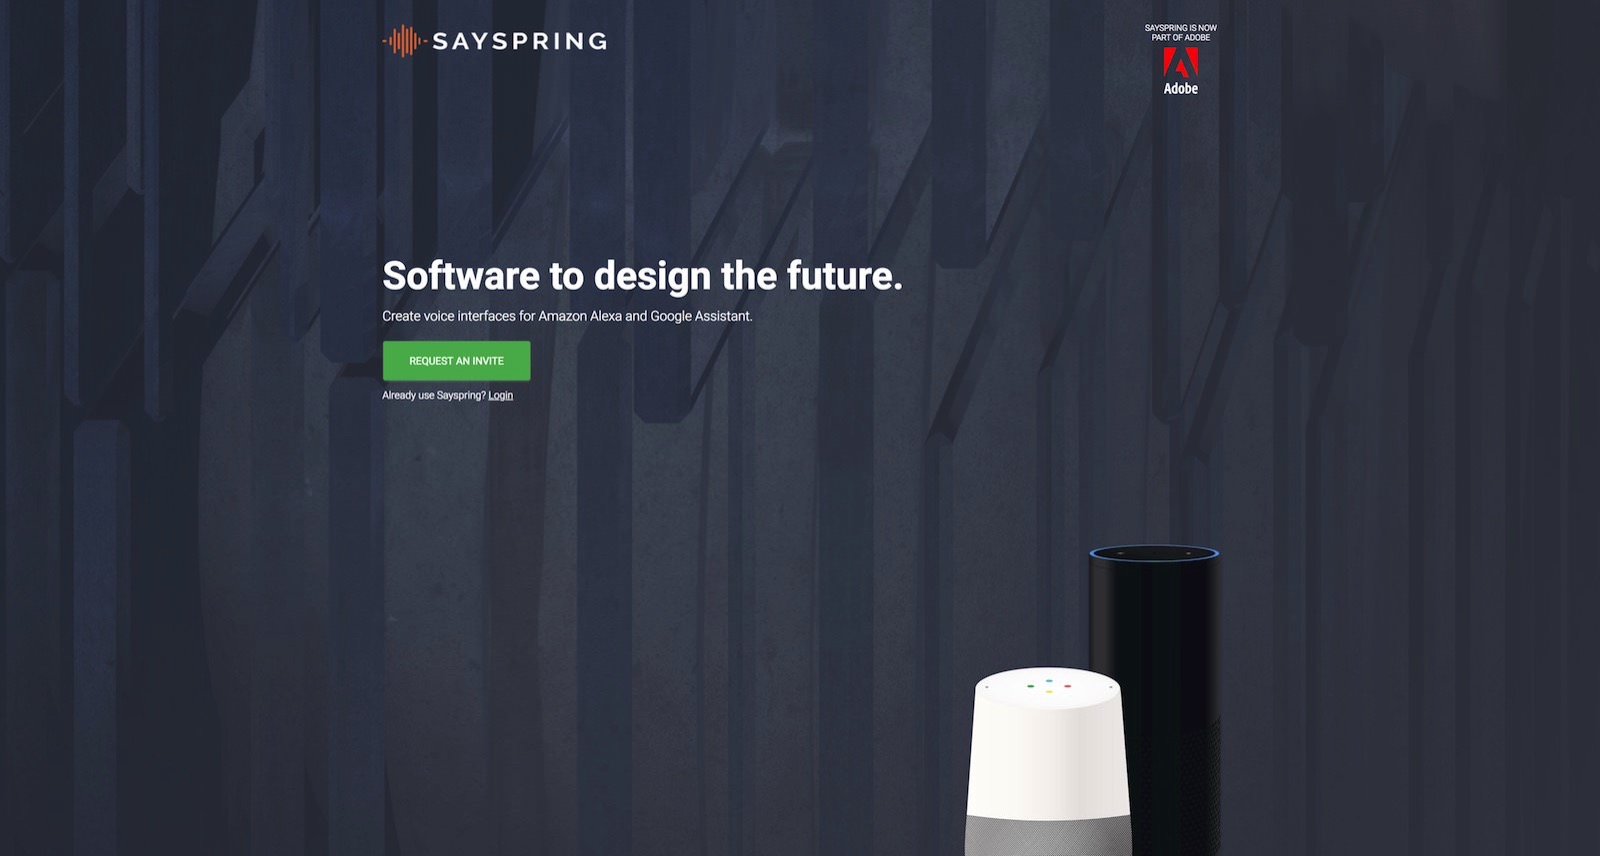 SaySpring aquired by Adobe